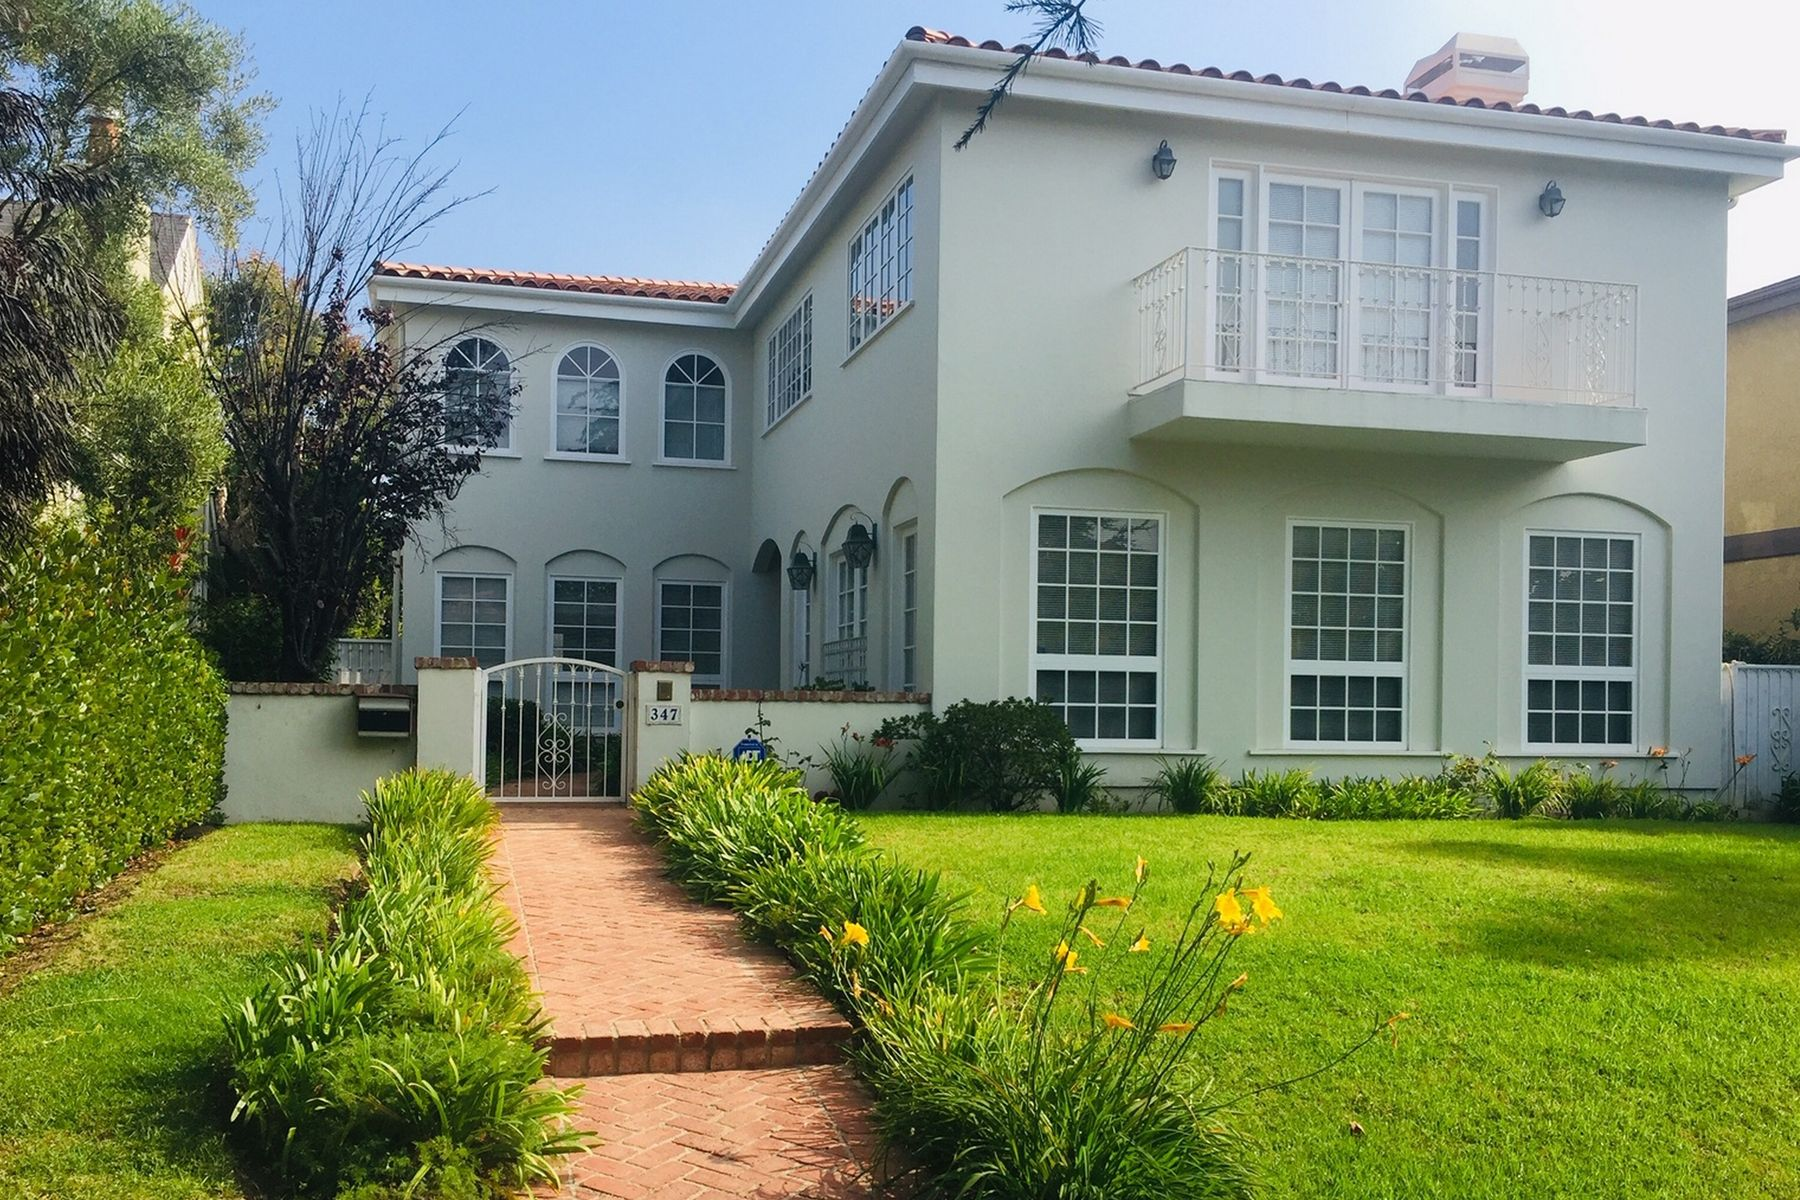 Single Family Homes for Sale at 347 22nd Street Santa Monica, California 90402 United States